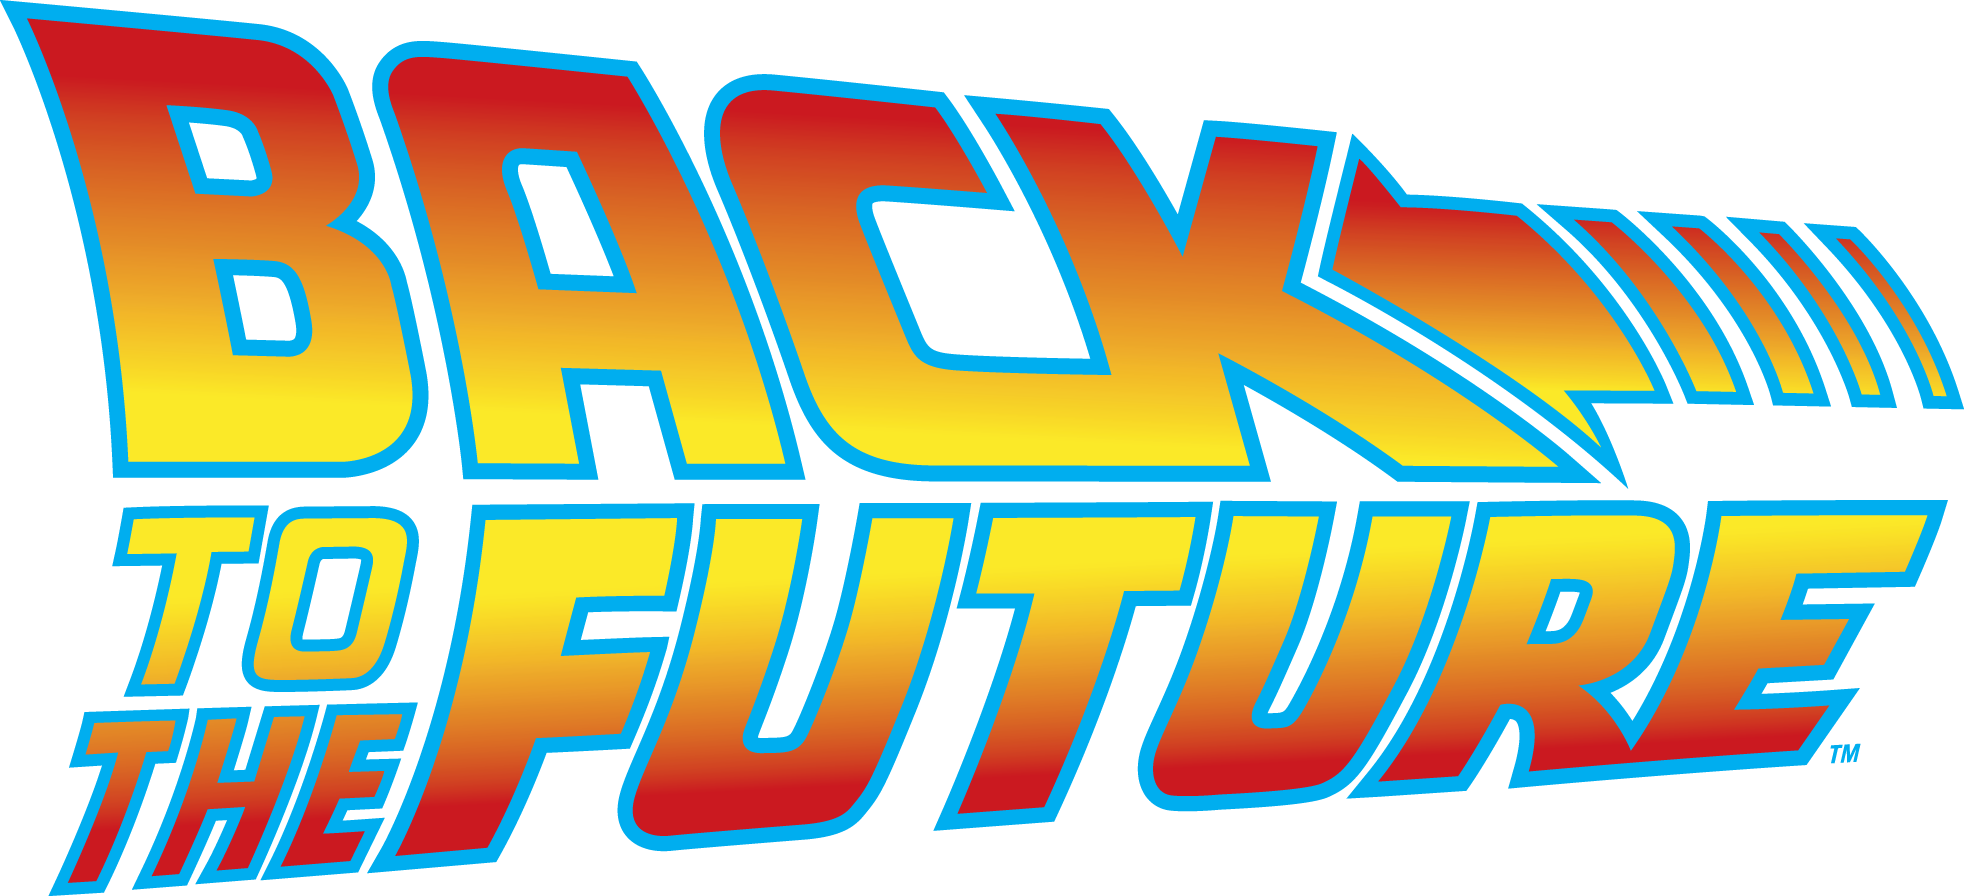 Back to the future png. Image logo idea wiki